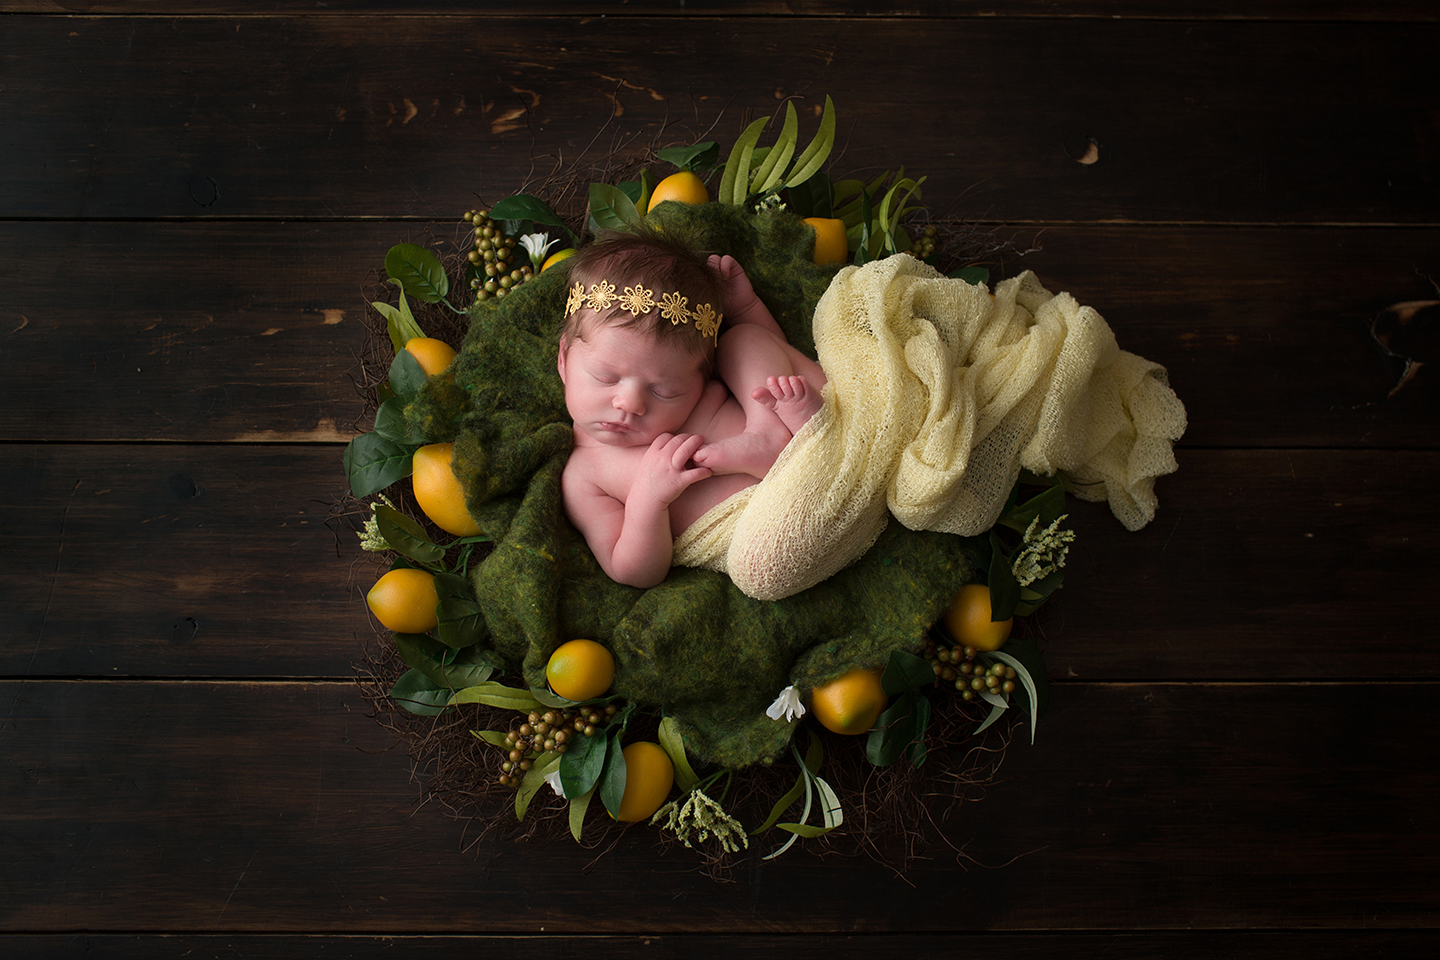 bliss photography-3025.png